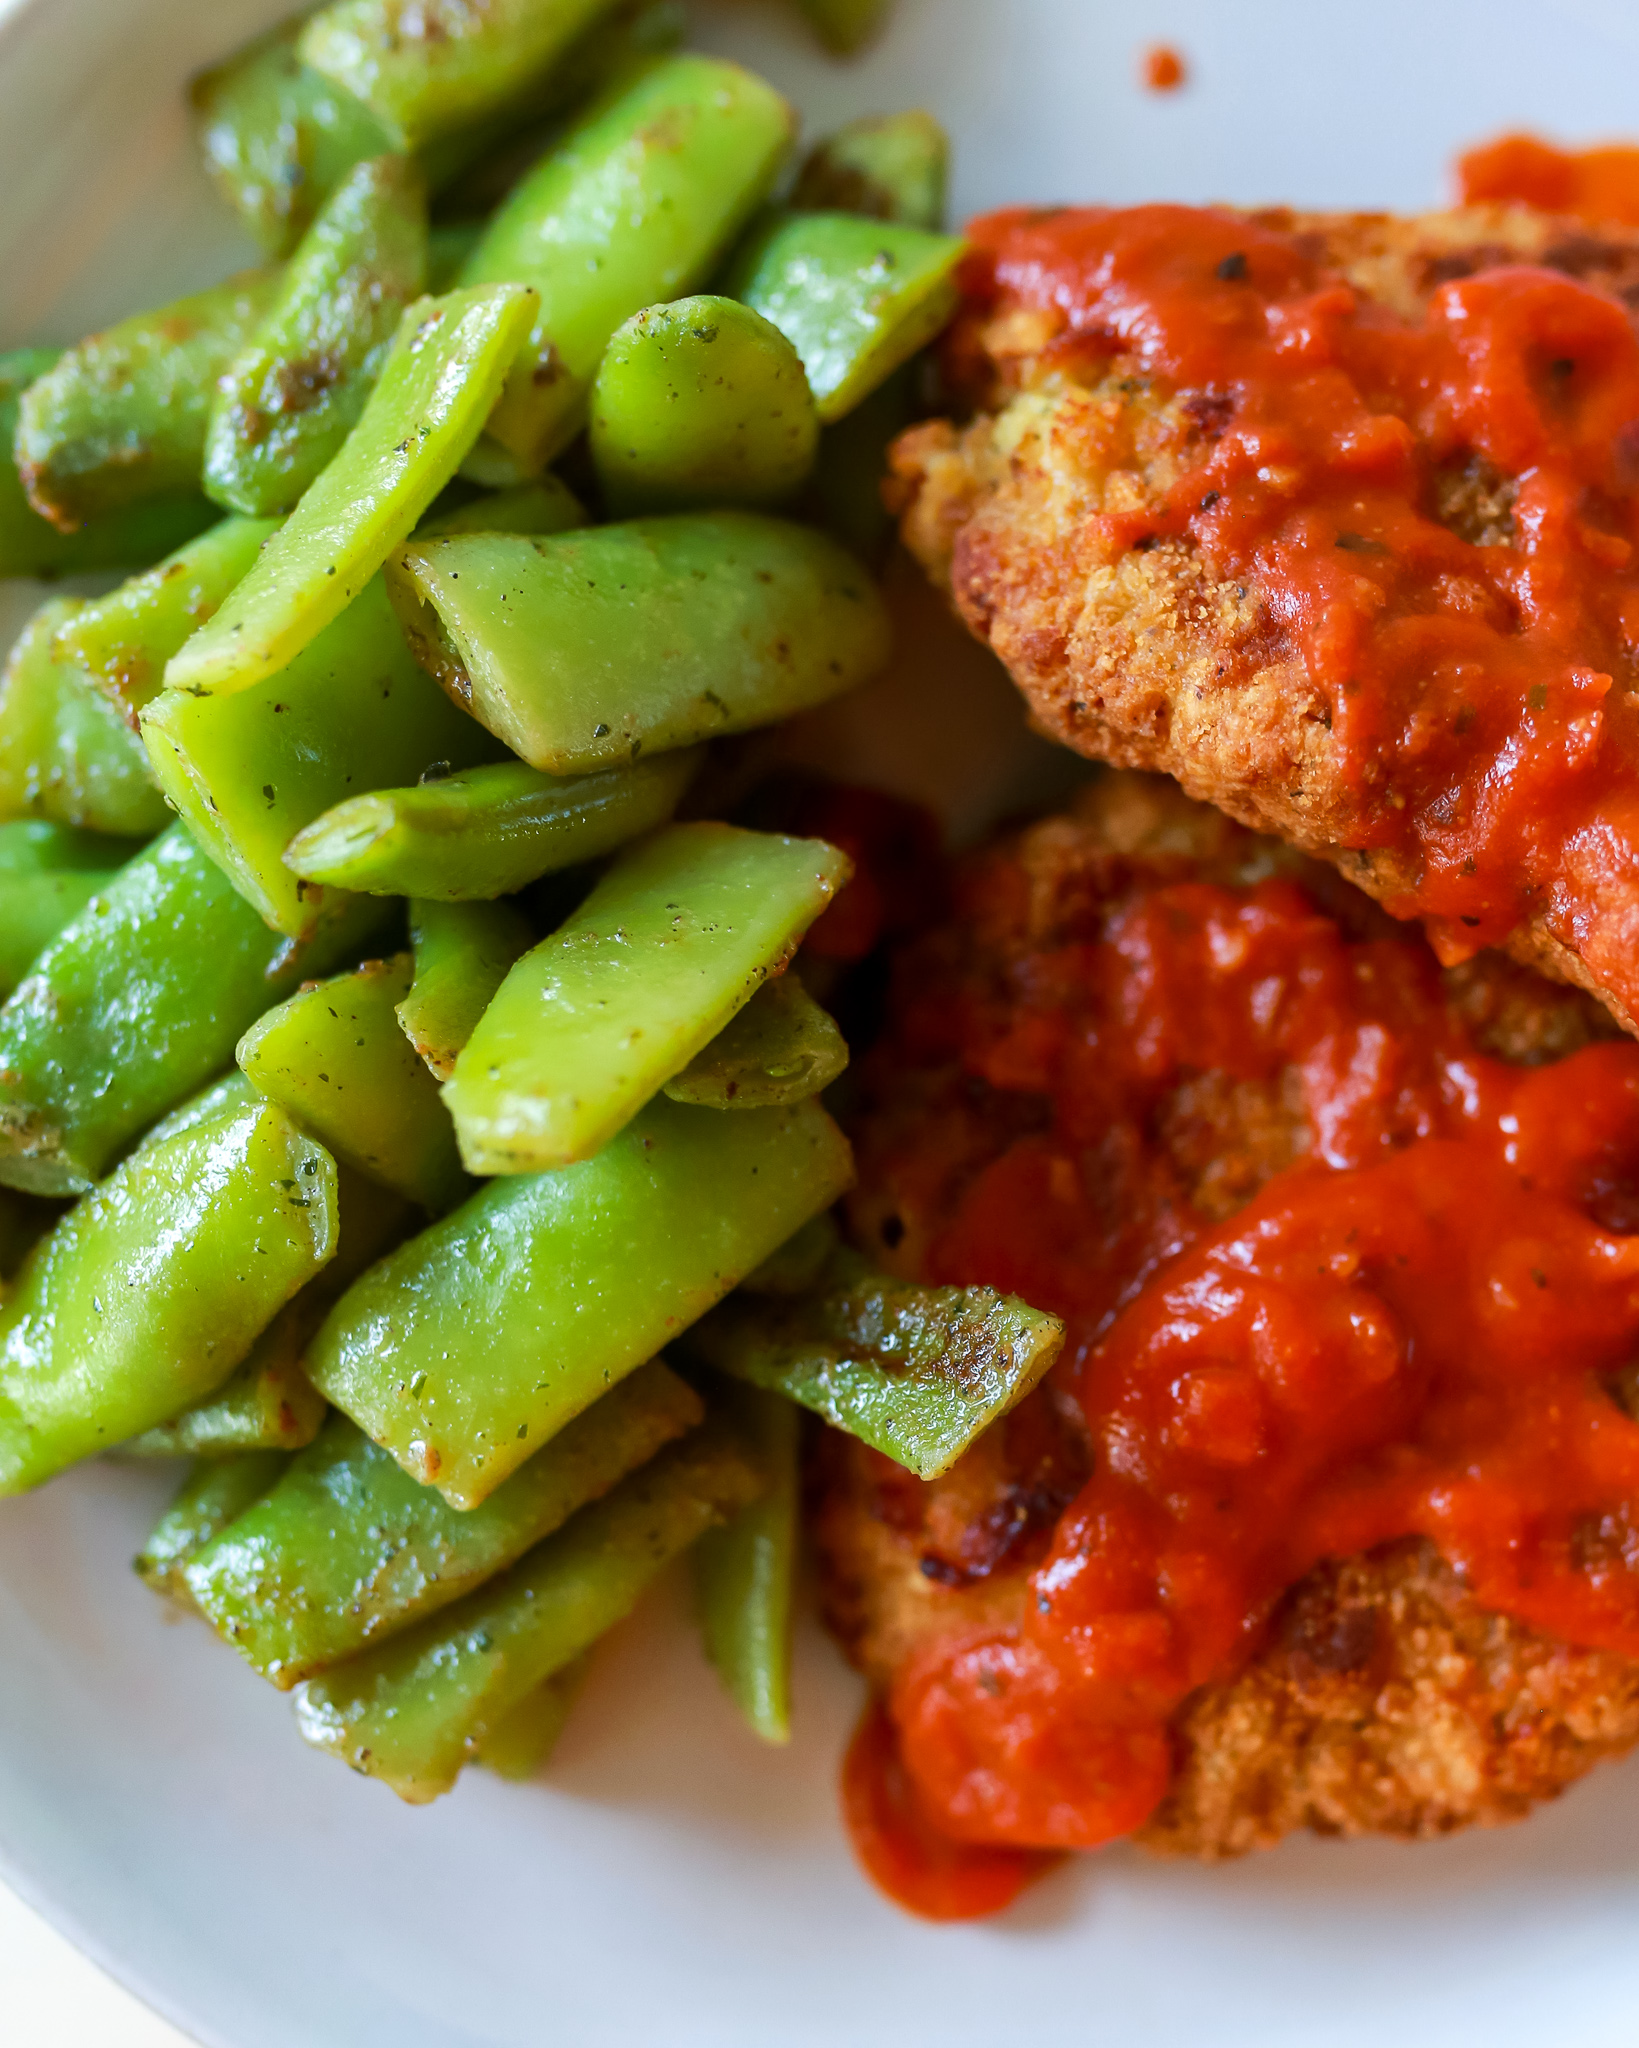 Crispy chicken pomodorr and the best flat Italian green beans!